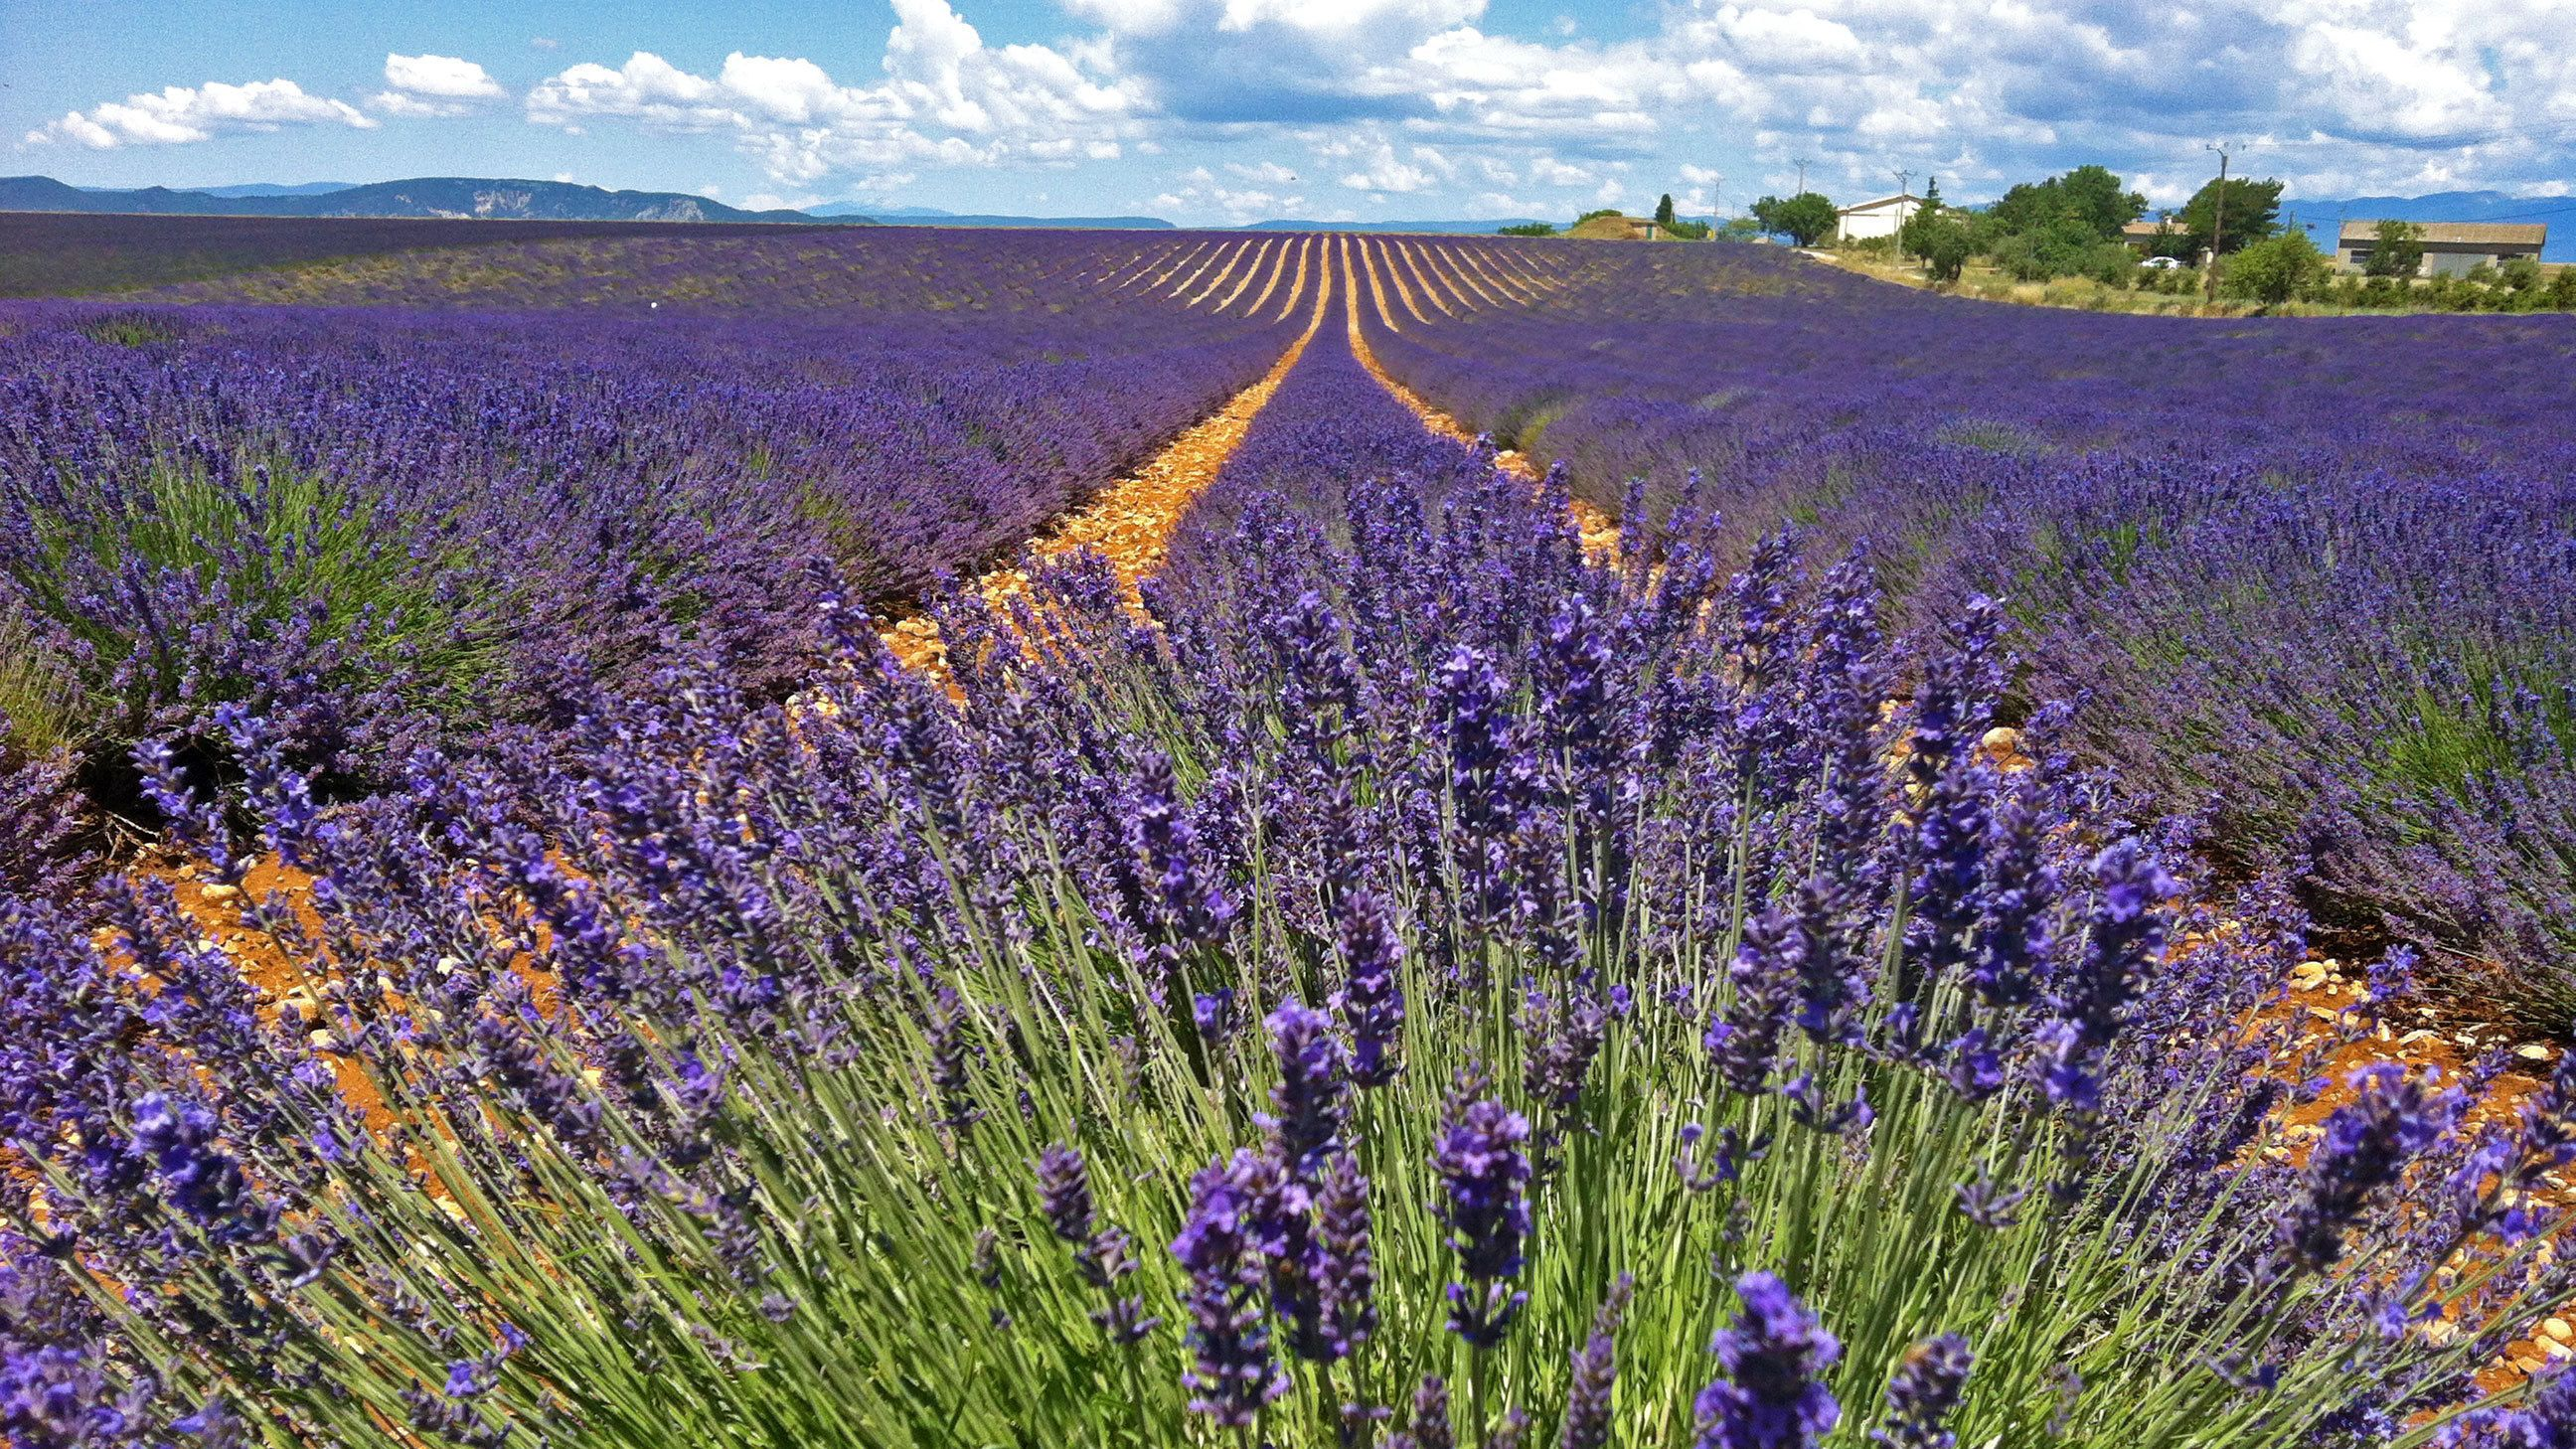 Fields of blooming lavender in Valensole